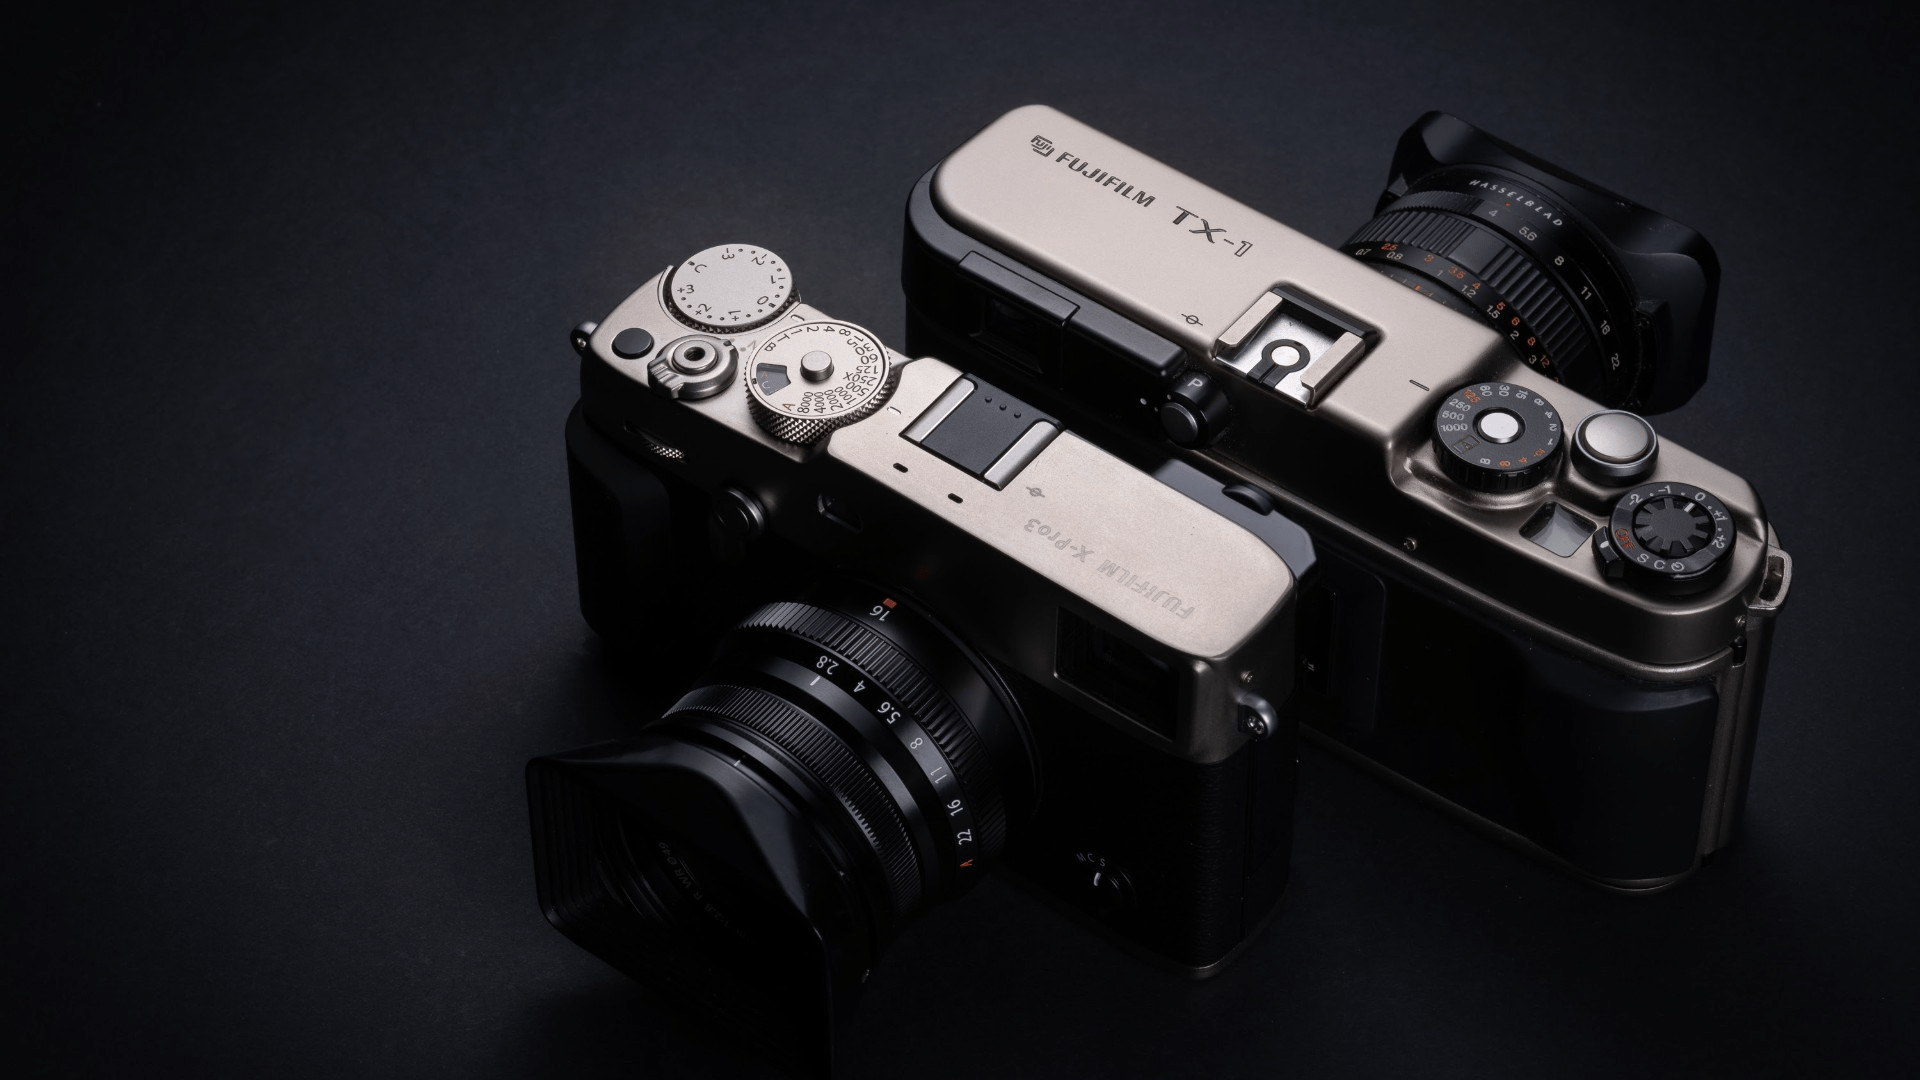 Black Point System In Qatar Fujifilm X Pro3 Delivers Retro Charm In A High Tech Package